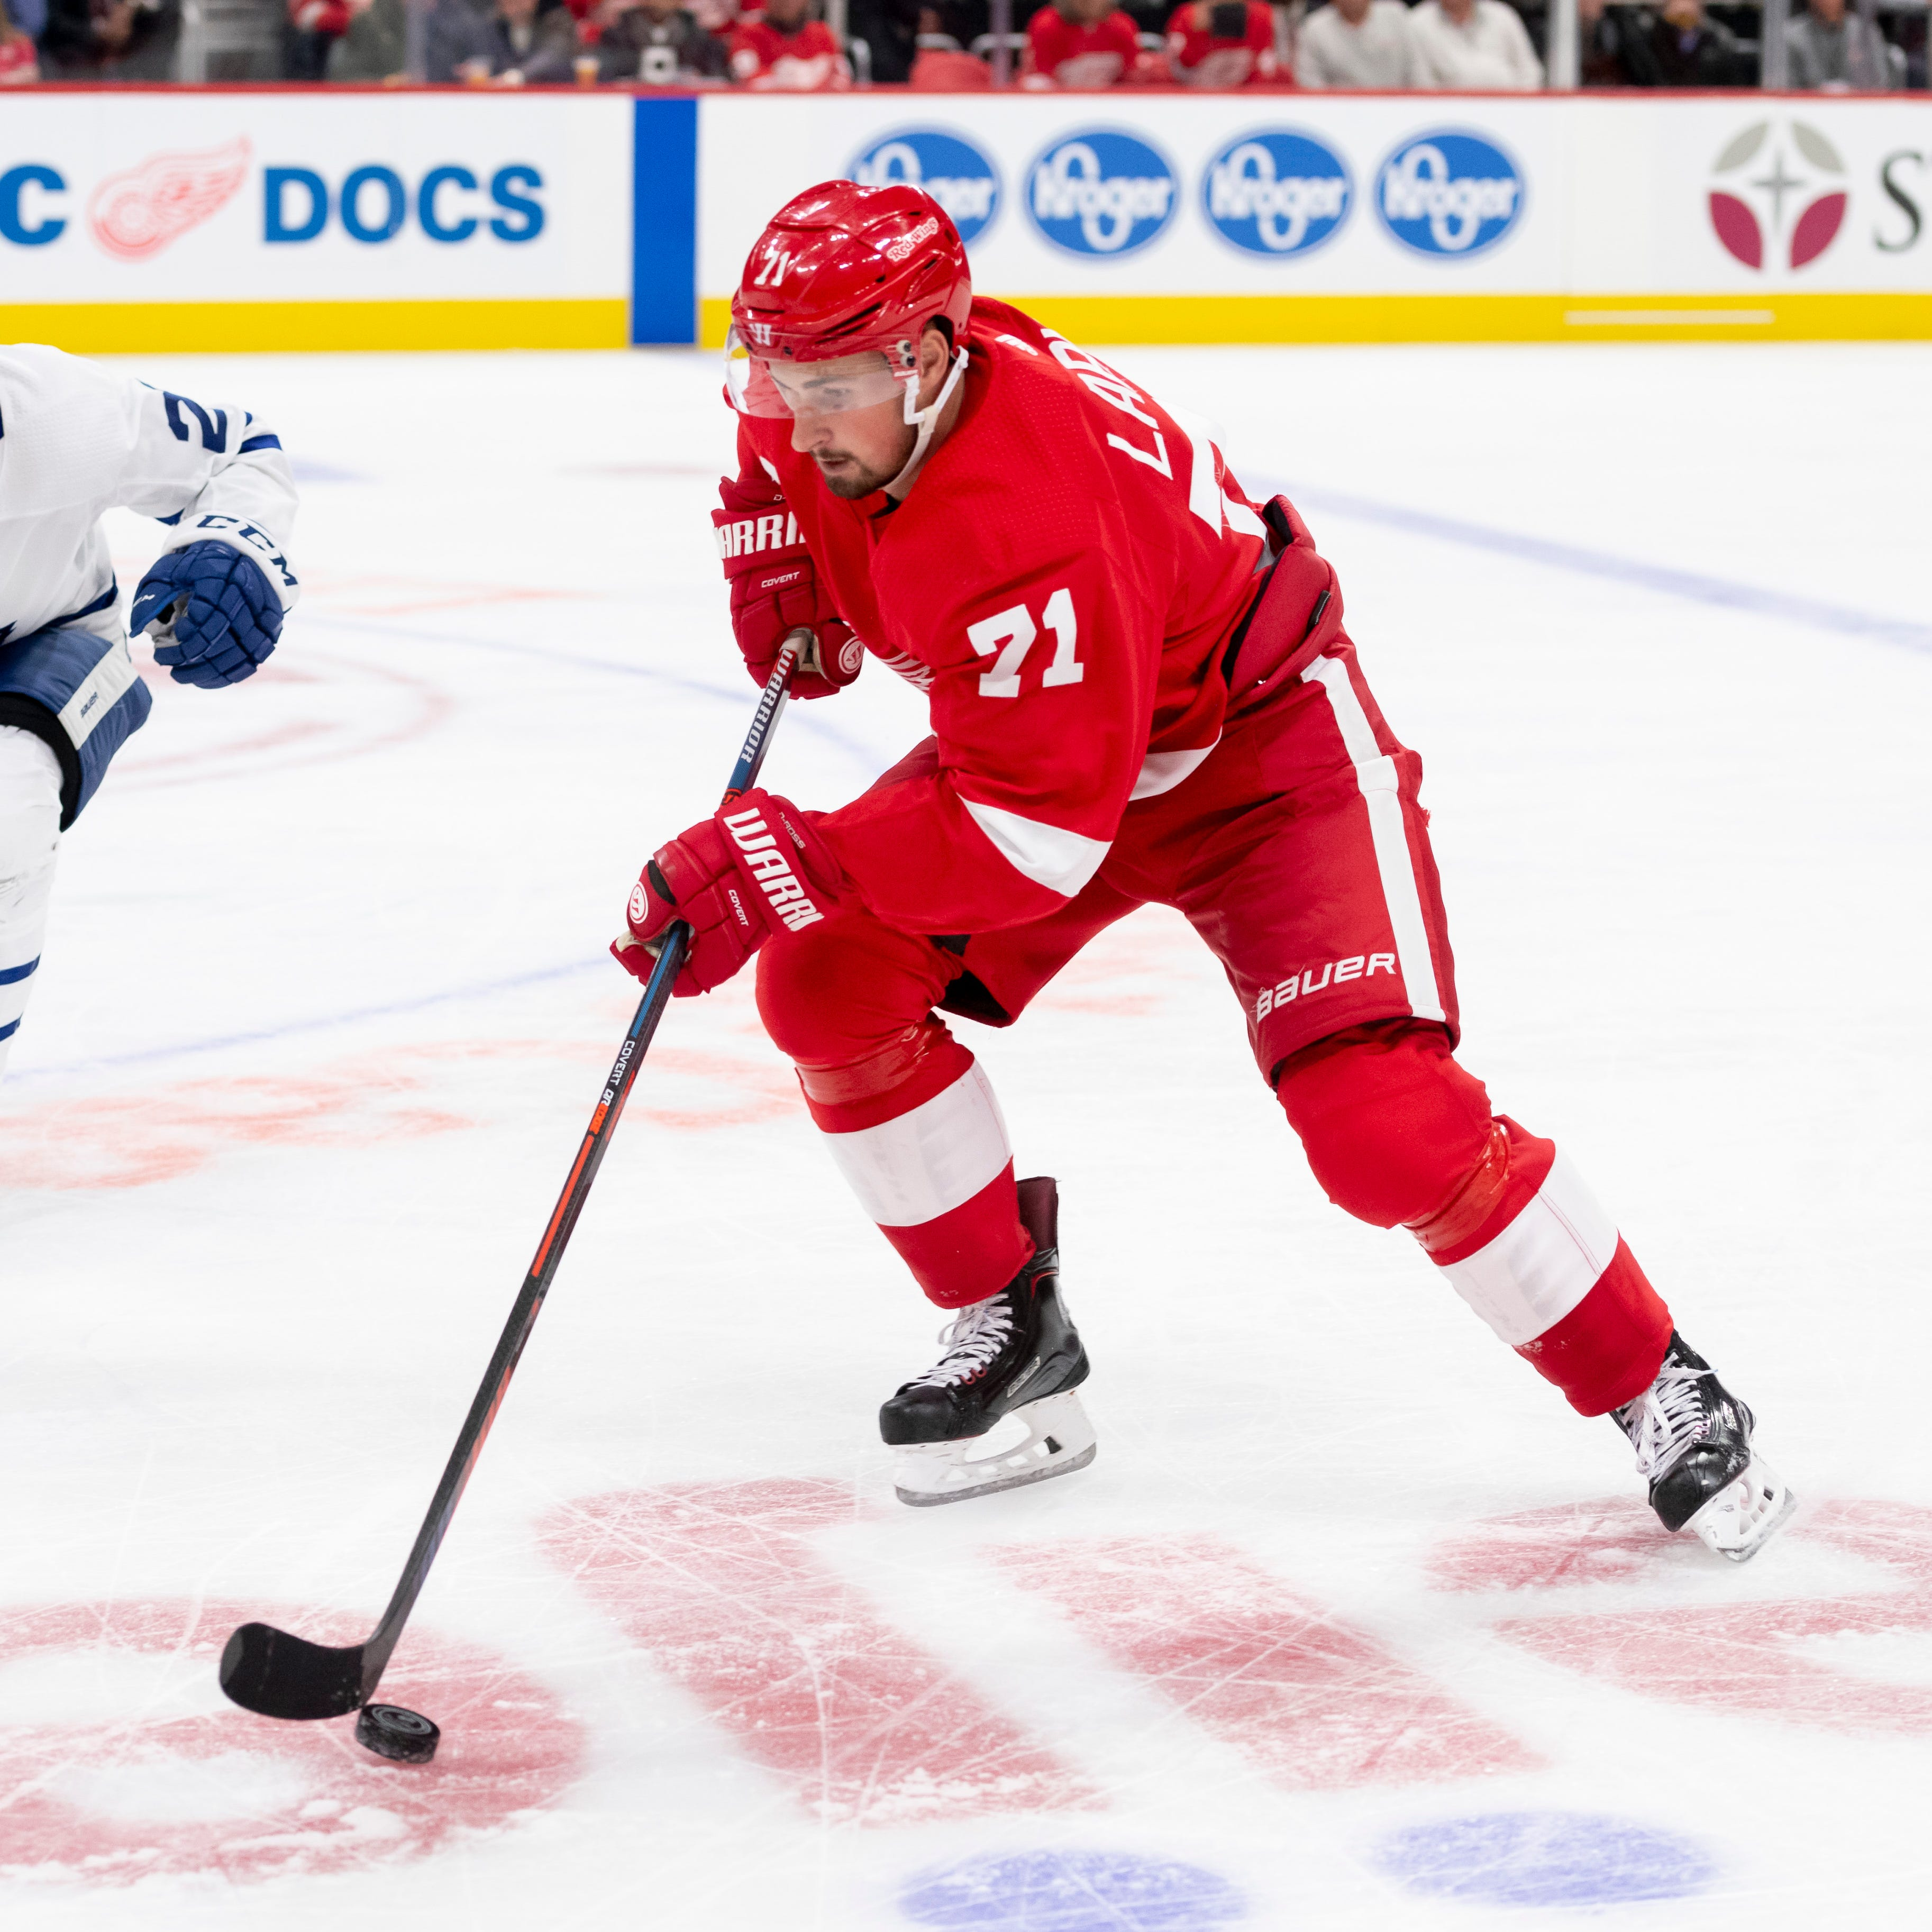 Red Wings notice livelier LCA crowds as play has improved